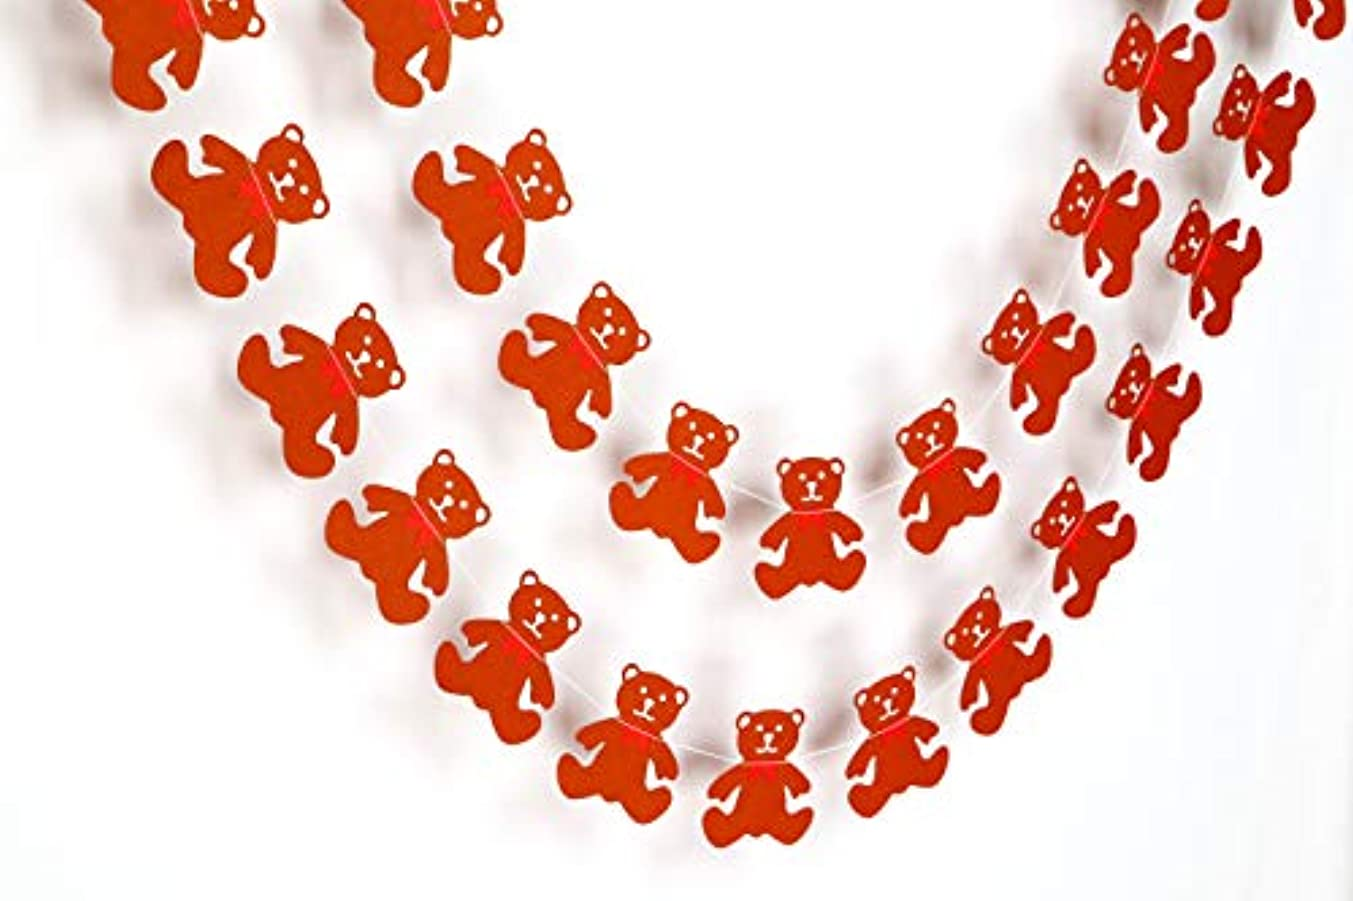 Gifttoys Brown Bear - Birthday Decorations Items,Birthday Decoration Material,Birthday Decorations,Birthday Party Decorations,Paper Garland, Birthday Party Garland.